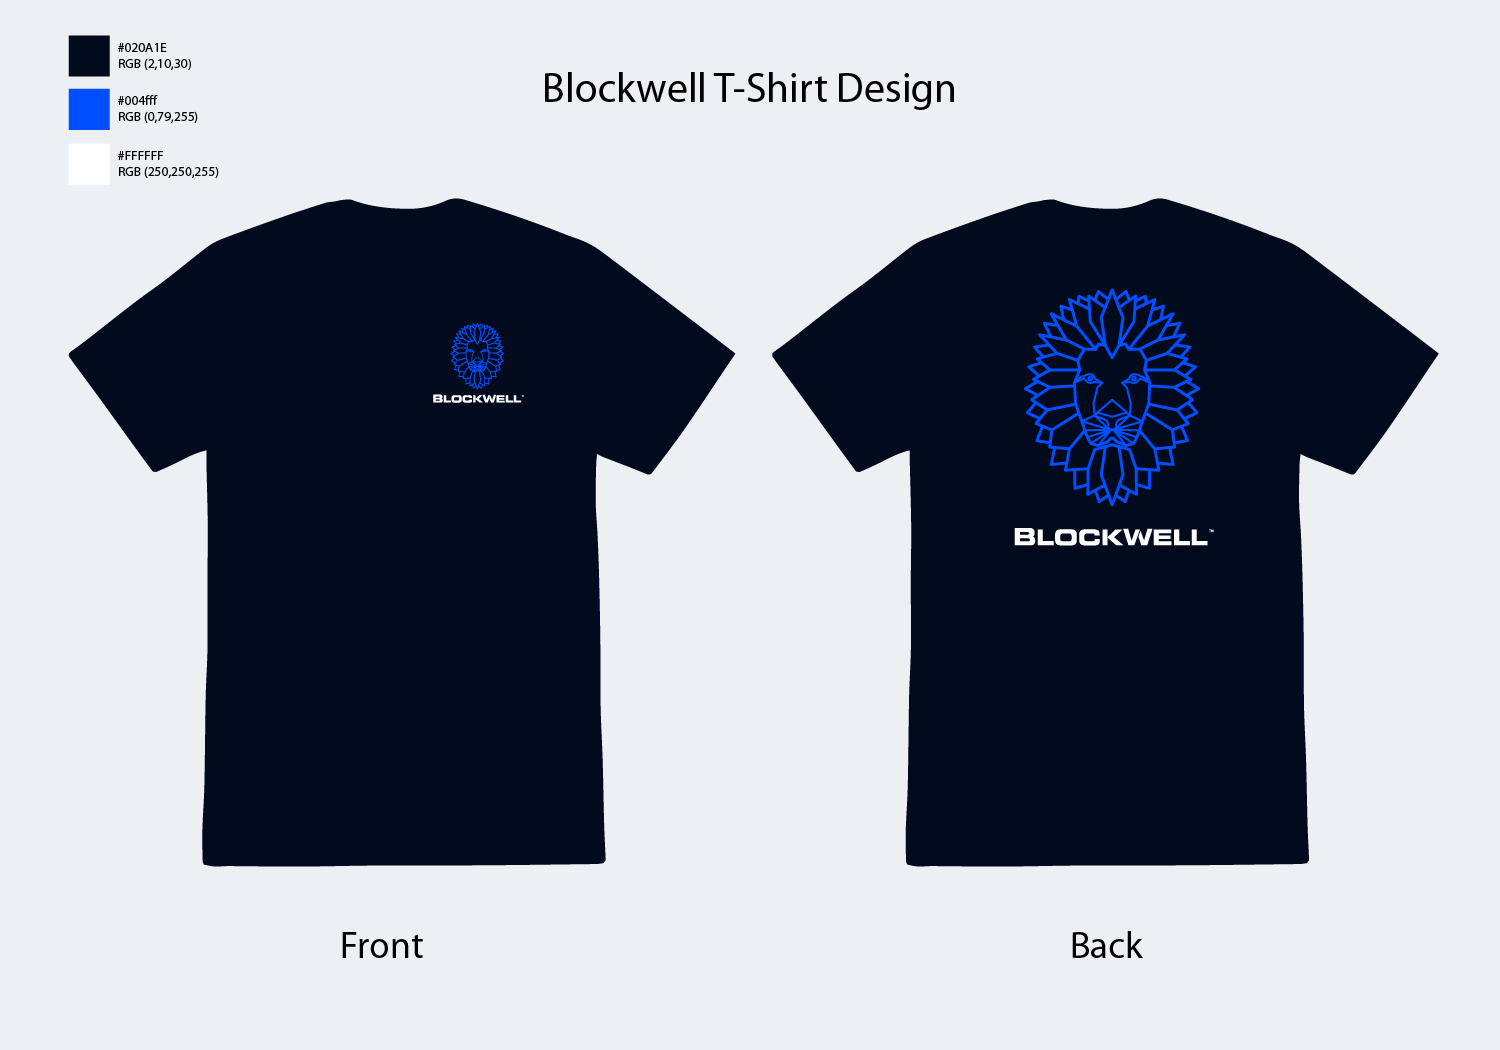 Blockwell_TShirt_Layout-01.png